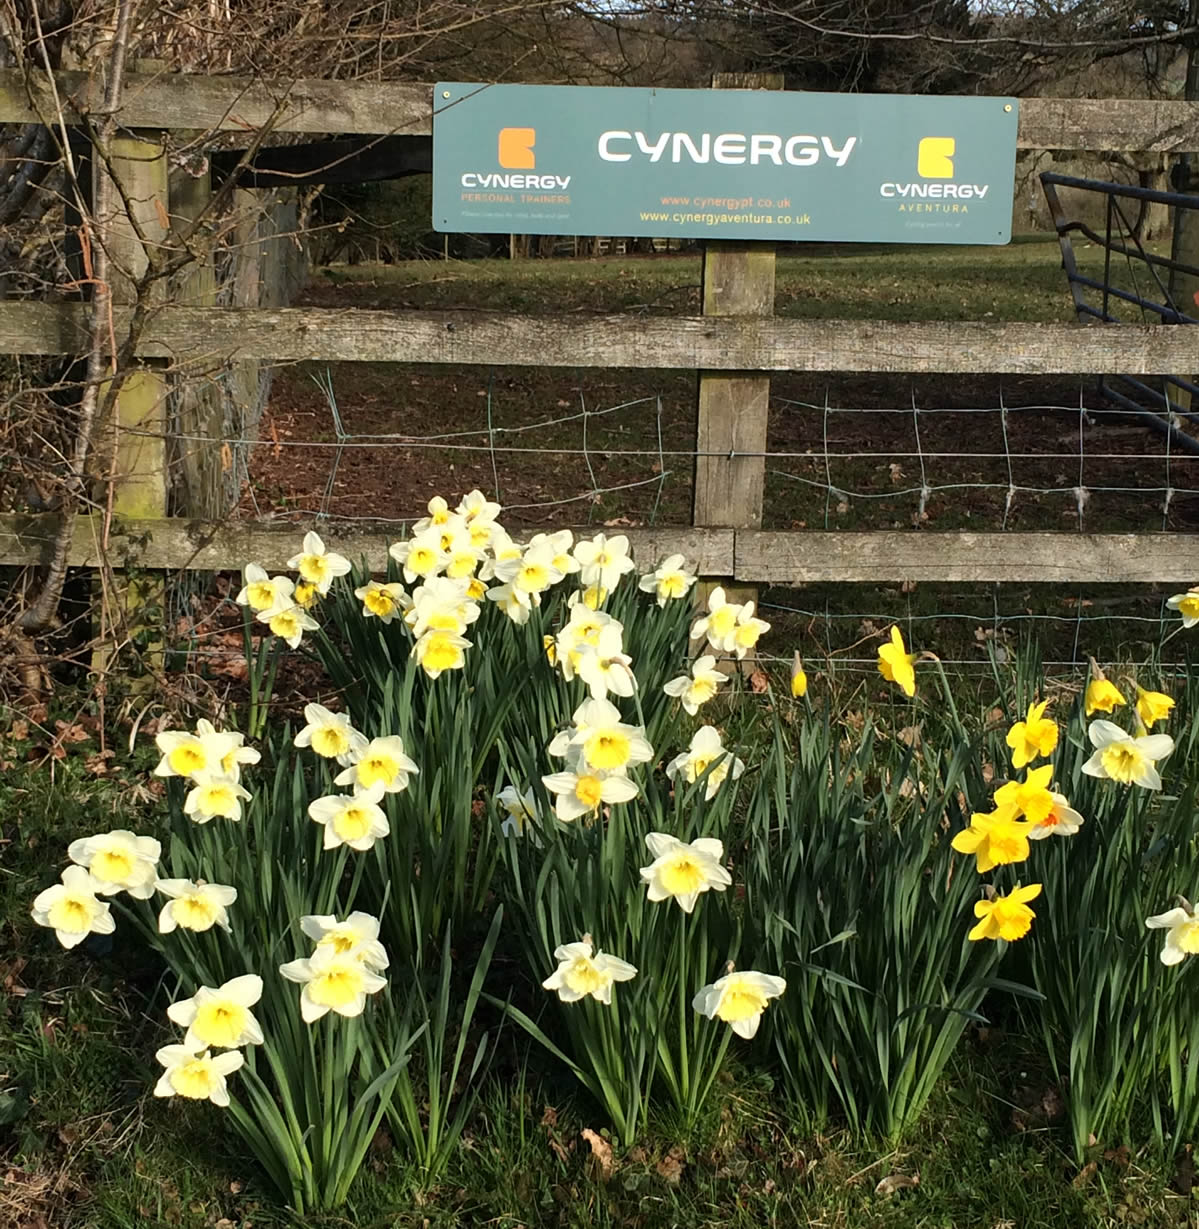 Spring has arrived at Cynergy PT!